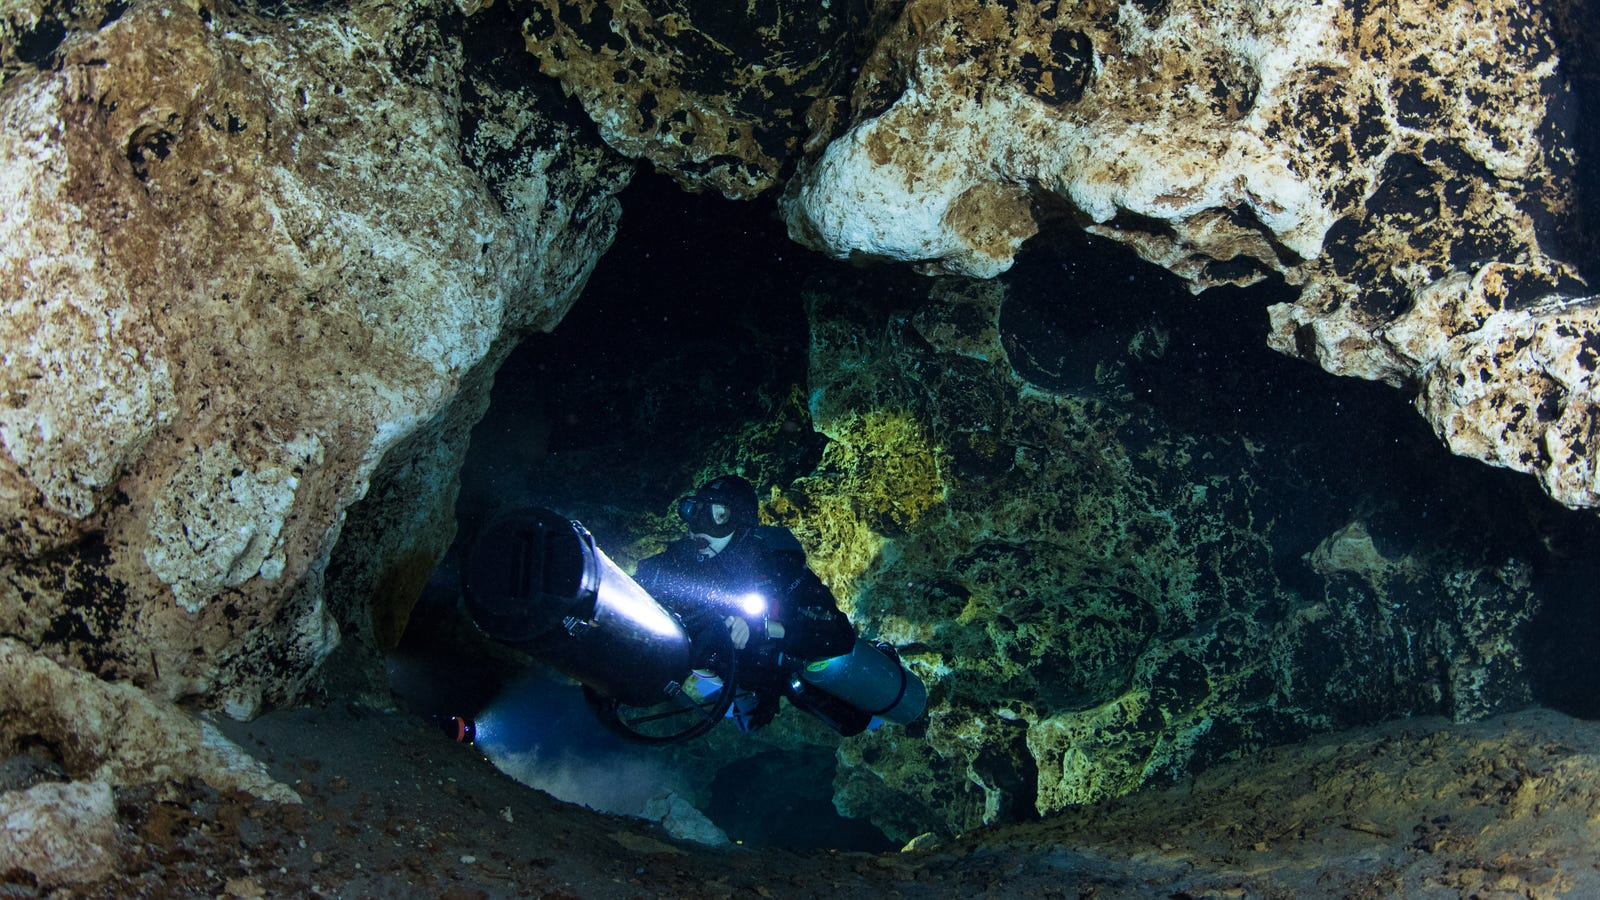 """""""One reason many cave divers wear tanks on their sides instead of their back is so they can fit through smaller spaces. Underwater caves are pitch dark until we illuminate the winding passageways. With enough light, vibrant colors and incredible rock formations come into view."""" - JA"""